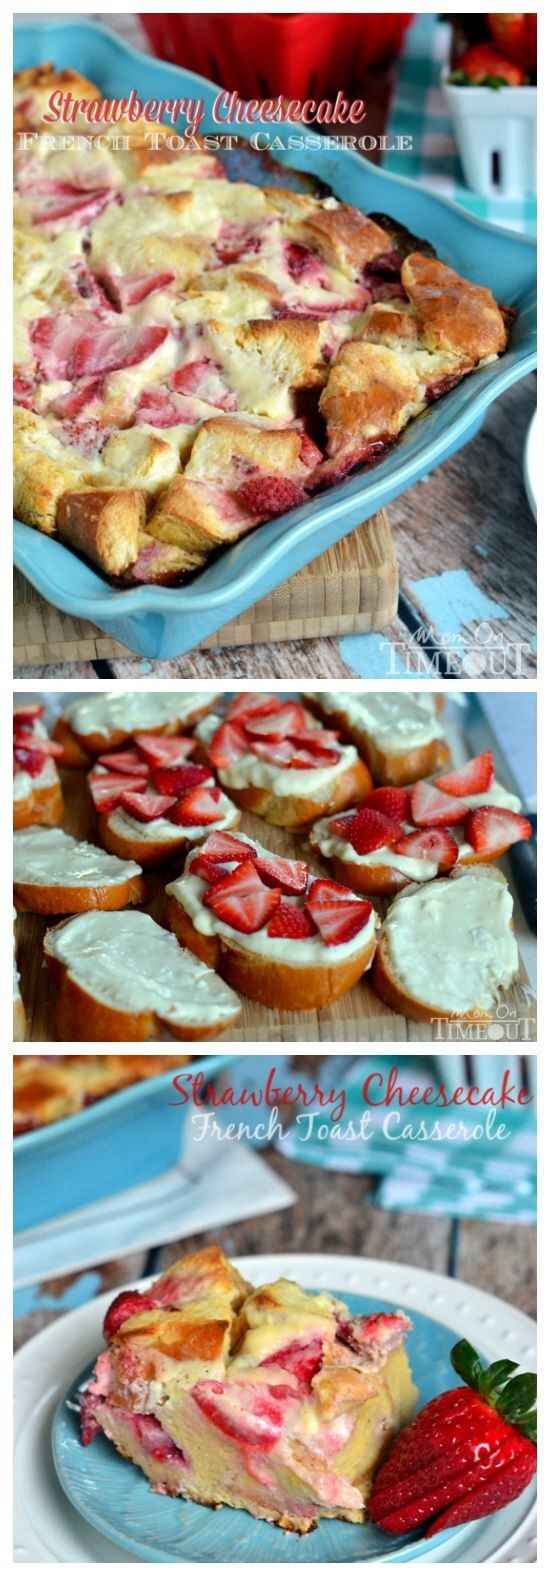 Strawberry Cheesecake French Toast Casserole